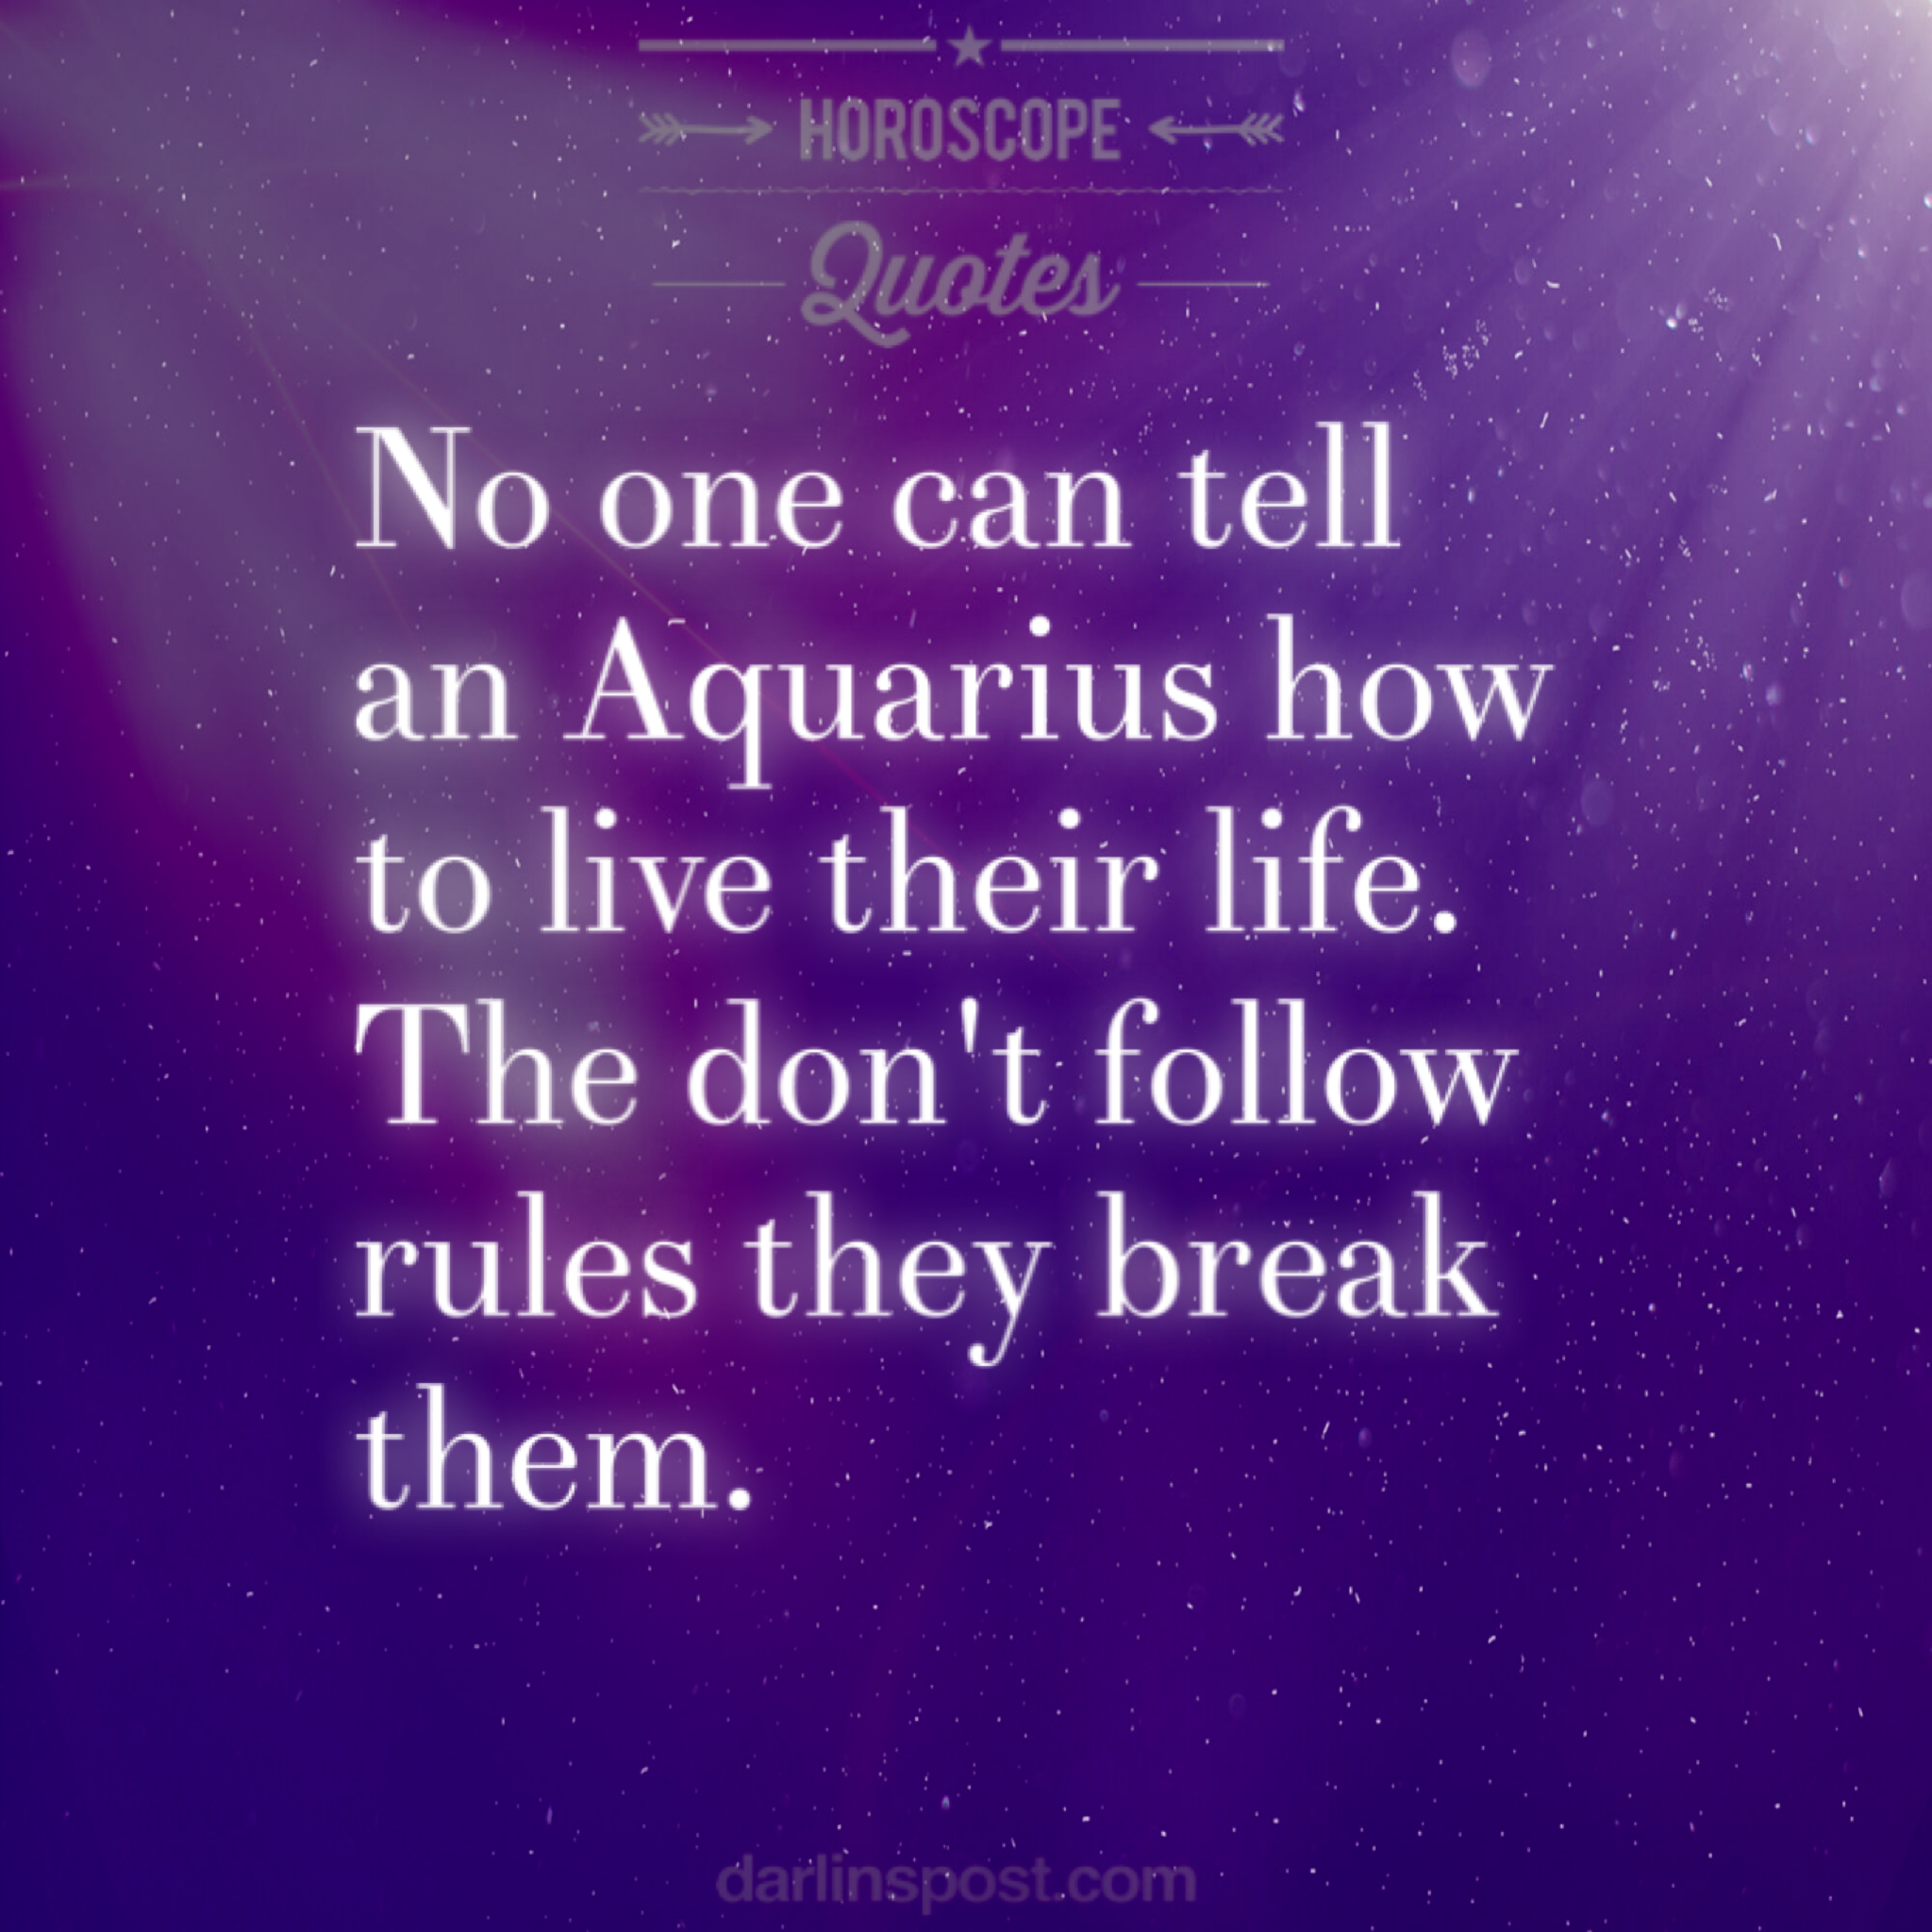 101 Amazing Horoscope Quotes And Sayings Horoscope Quotes Aquarius Quotes Be Yourself Quotes